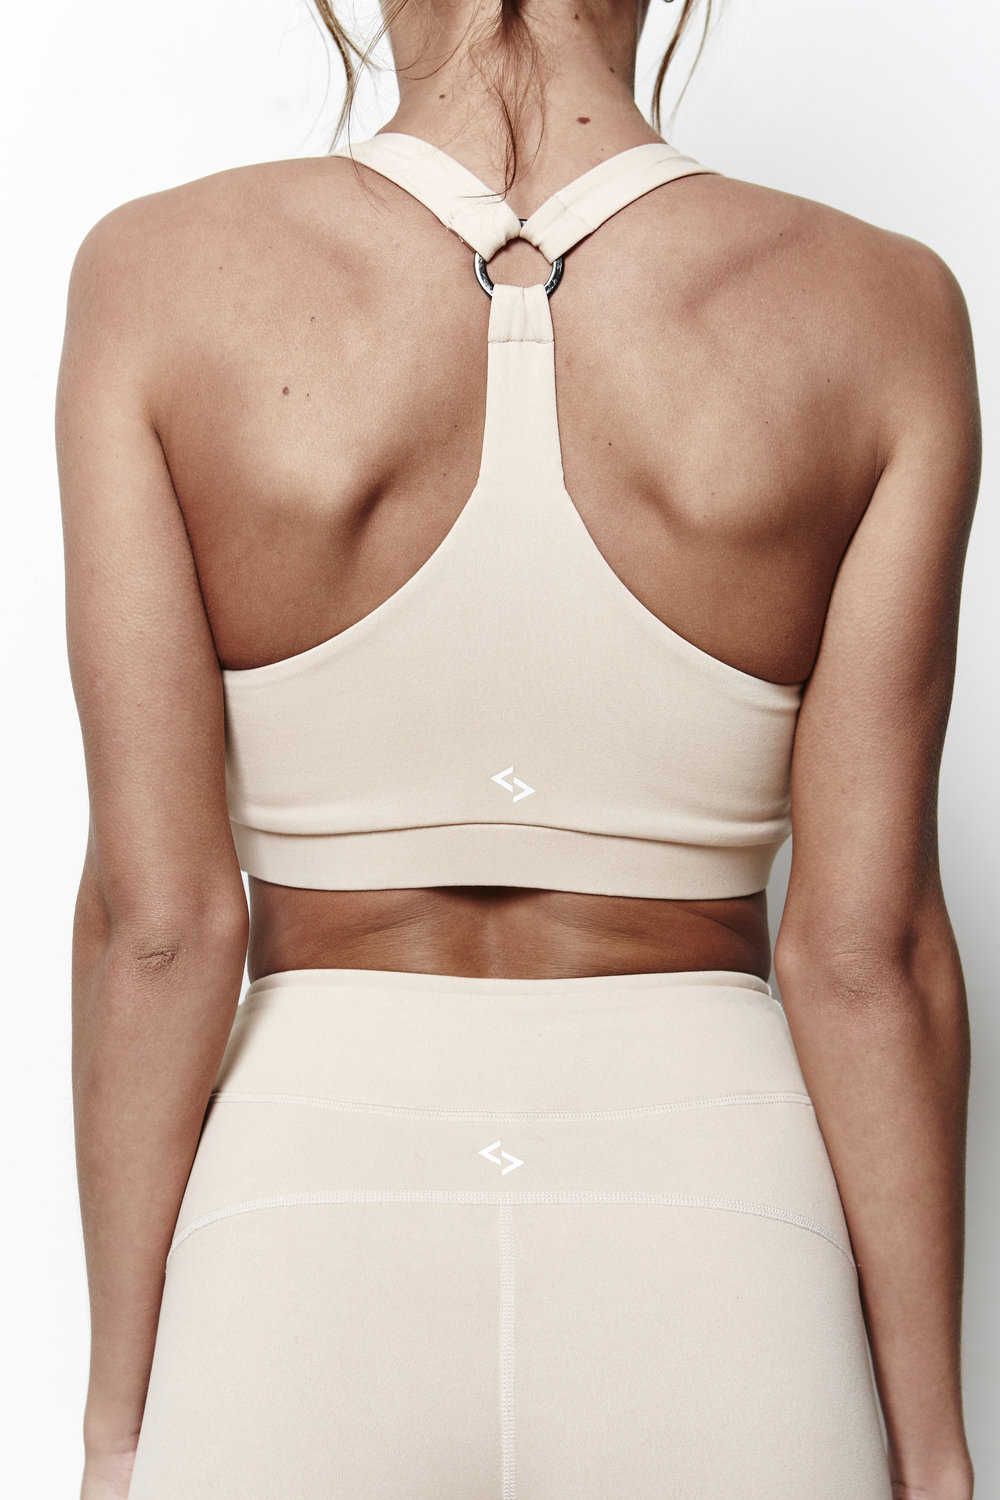 The Tri Bra features a hoop ring back detail, adding a touch of elegance to the simple back design. Featuring the Adanola logo to the front, this bra looks amazing teamed with the Barre Legging.